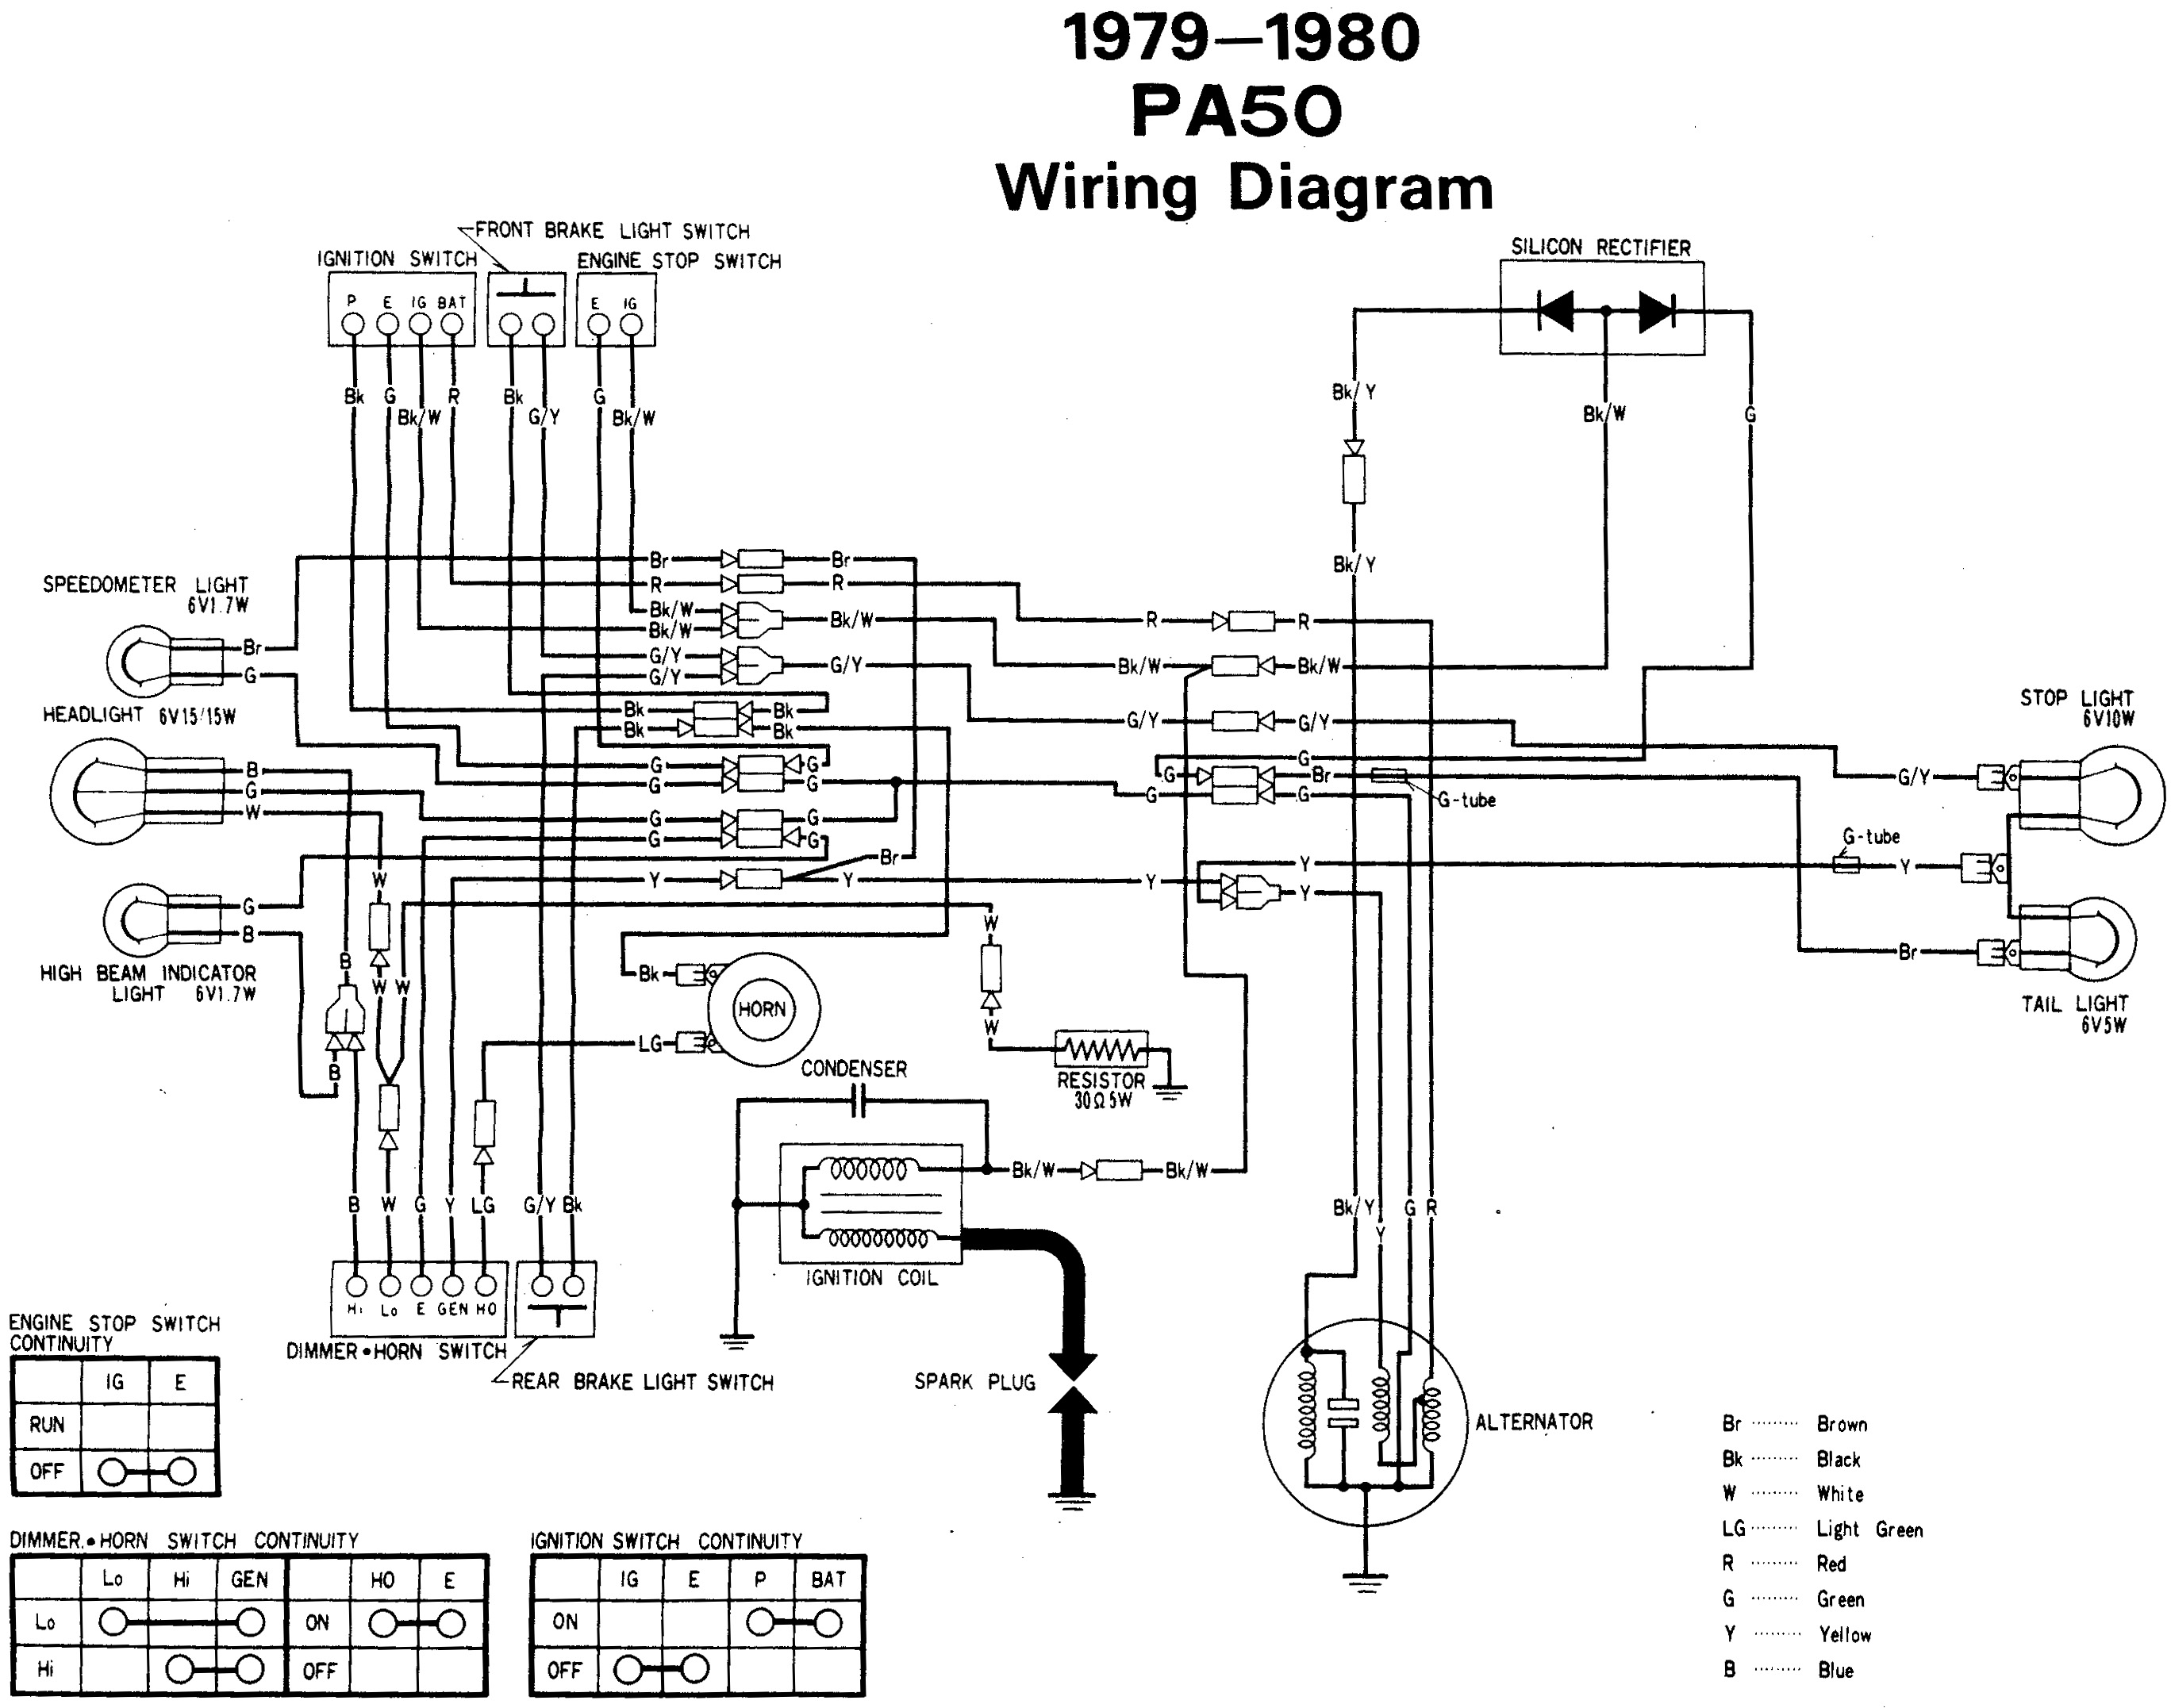 honda today 50 wiring diagram spotlight for landcruiser pa50 get free image about